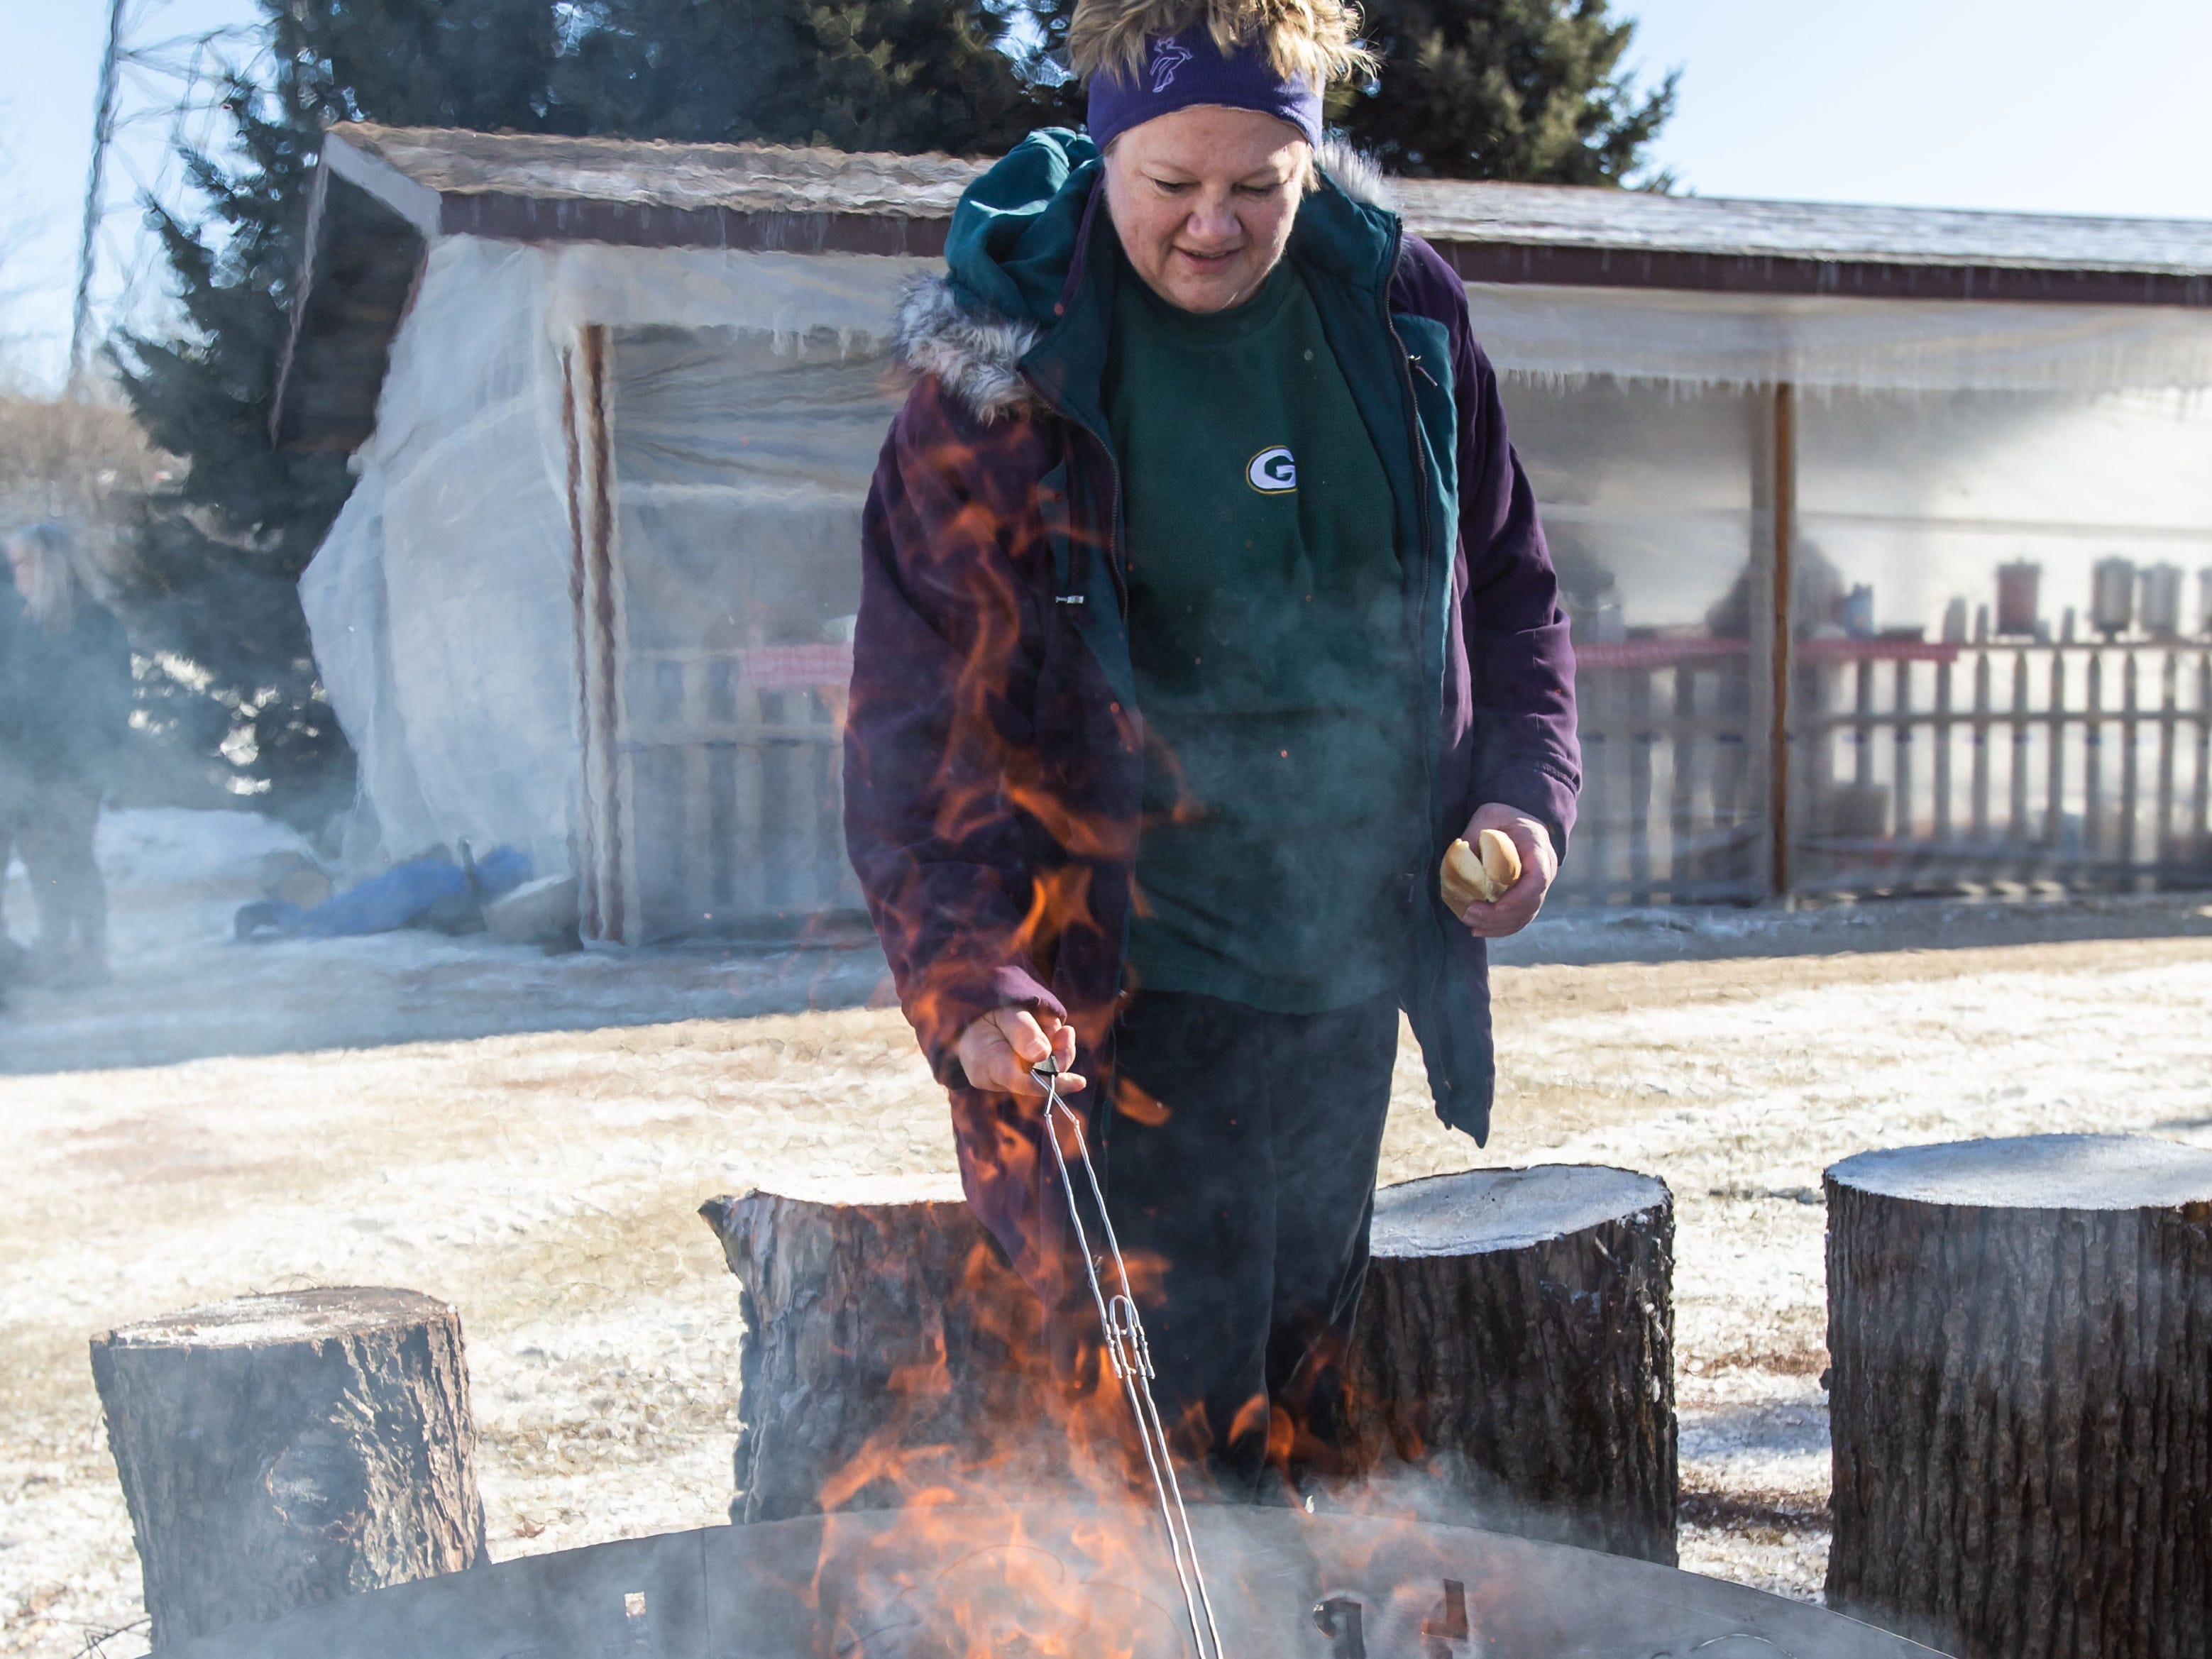 Winterfest Chairperson Carol Emmel cooks a hot dog during the annual Winterfest at Lisbon Community Park on Saturday, Feb. 9, 2019. The free event includes ice skating, sledding, skiing, a bonfire, a warming tent with free refreshments, hot dogs and s'mores.